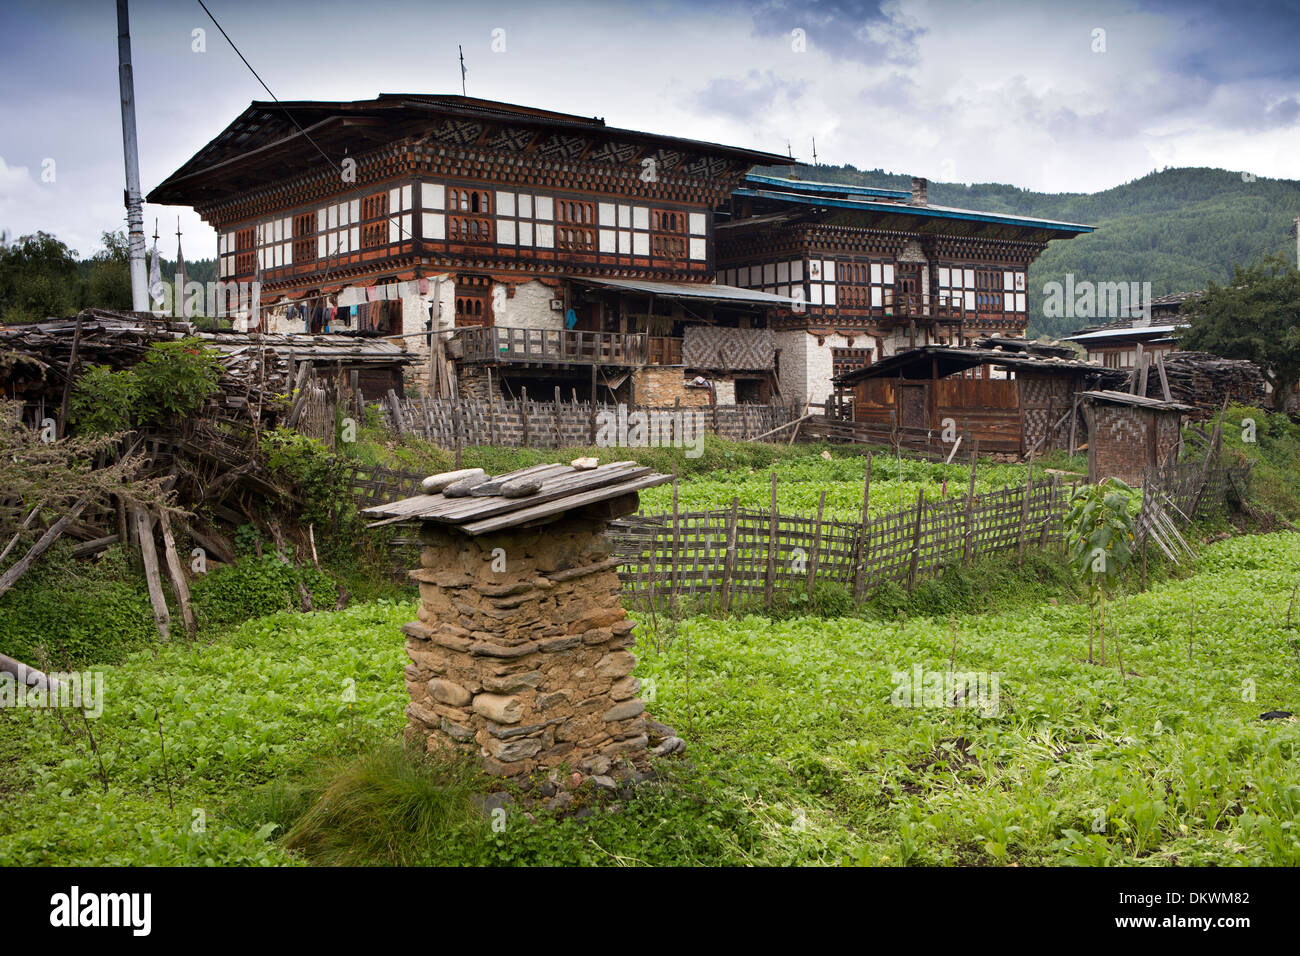 Bhutan, Bumthang Valley, Gaytsa Village, traditionally decorated wood framed houses - Stock Image